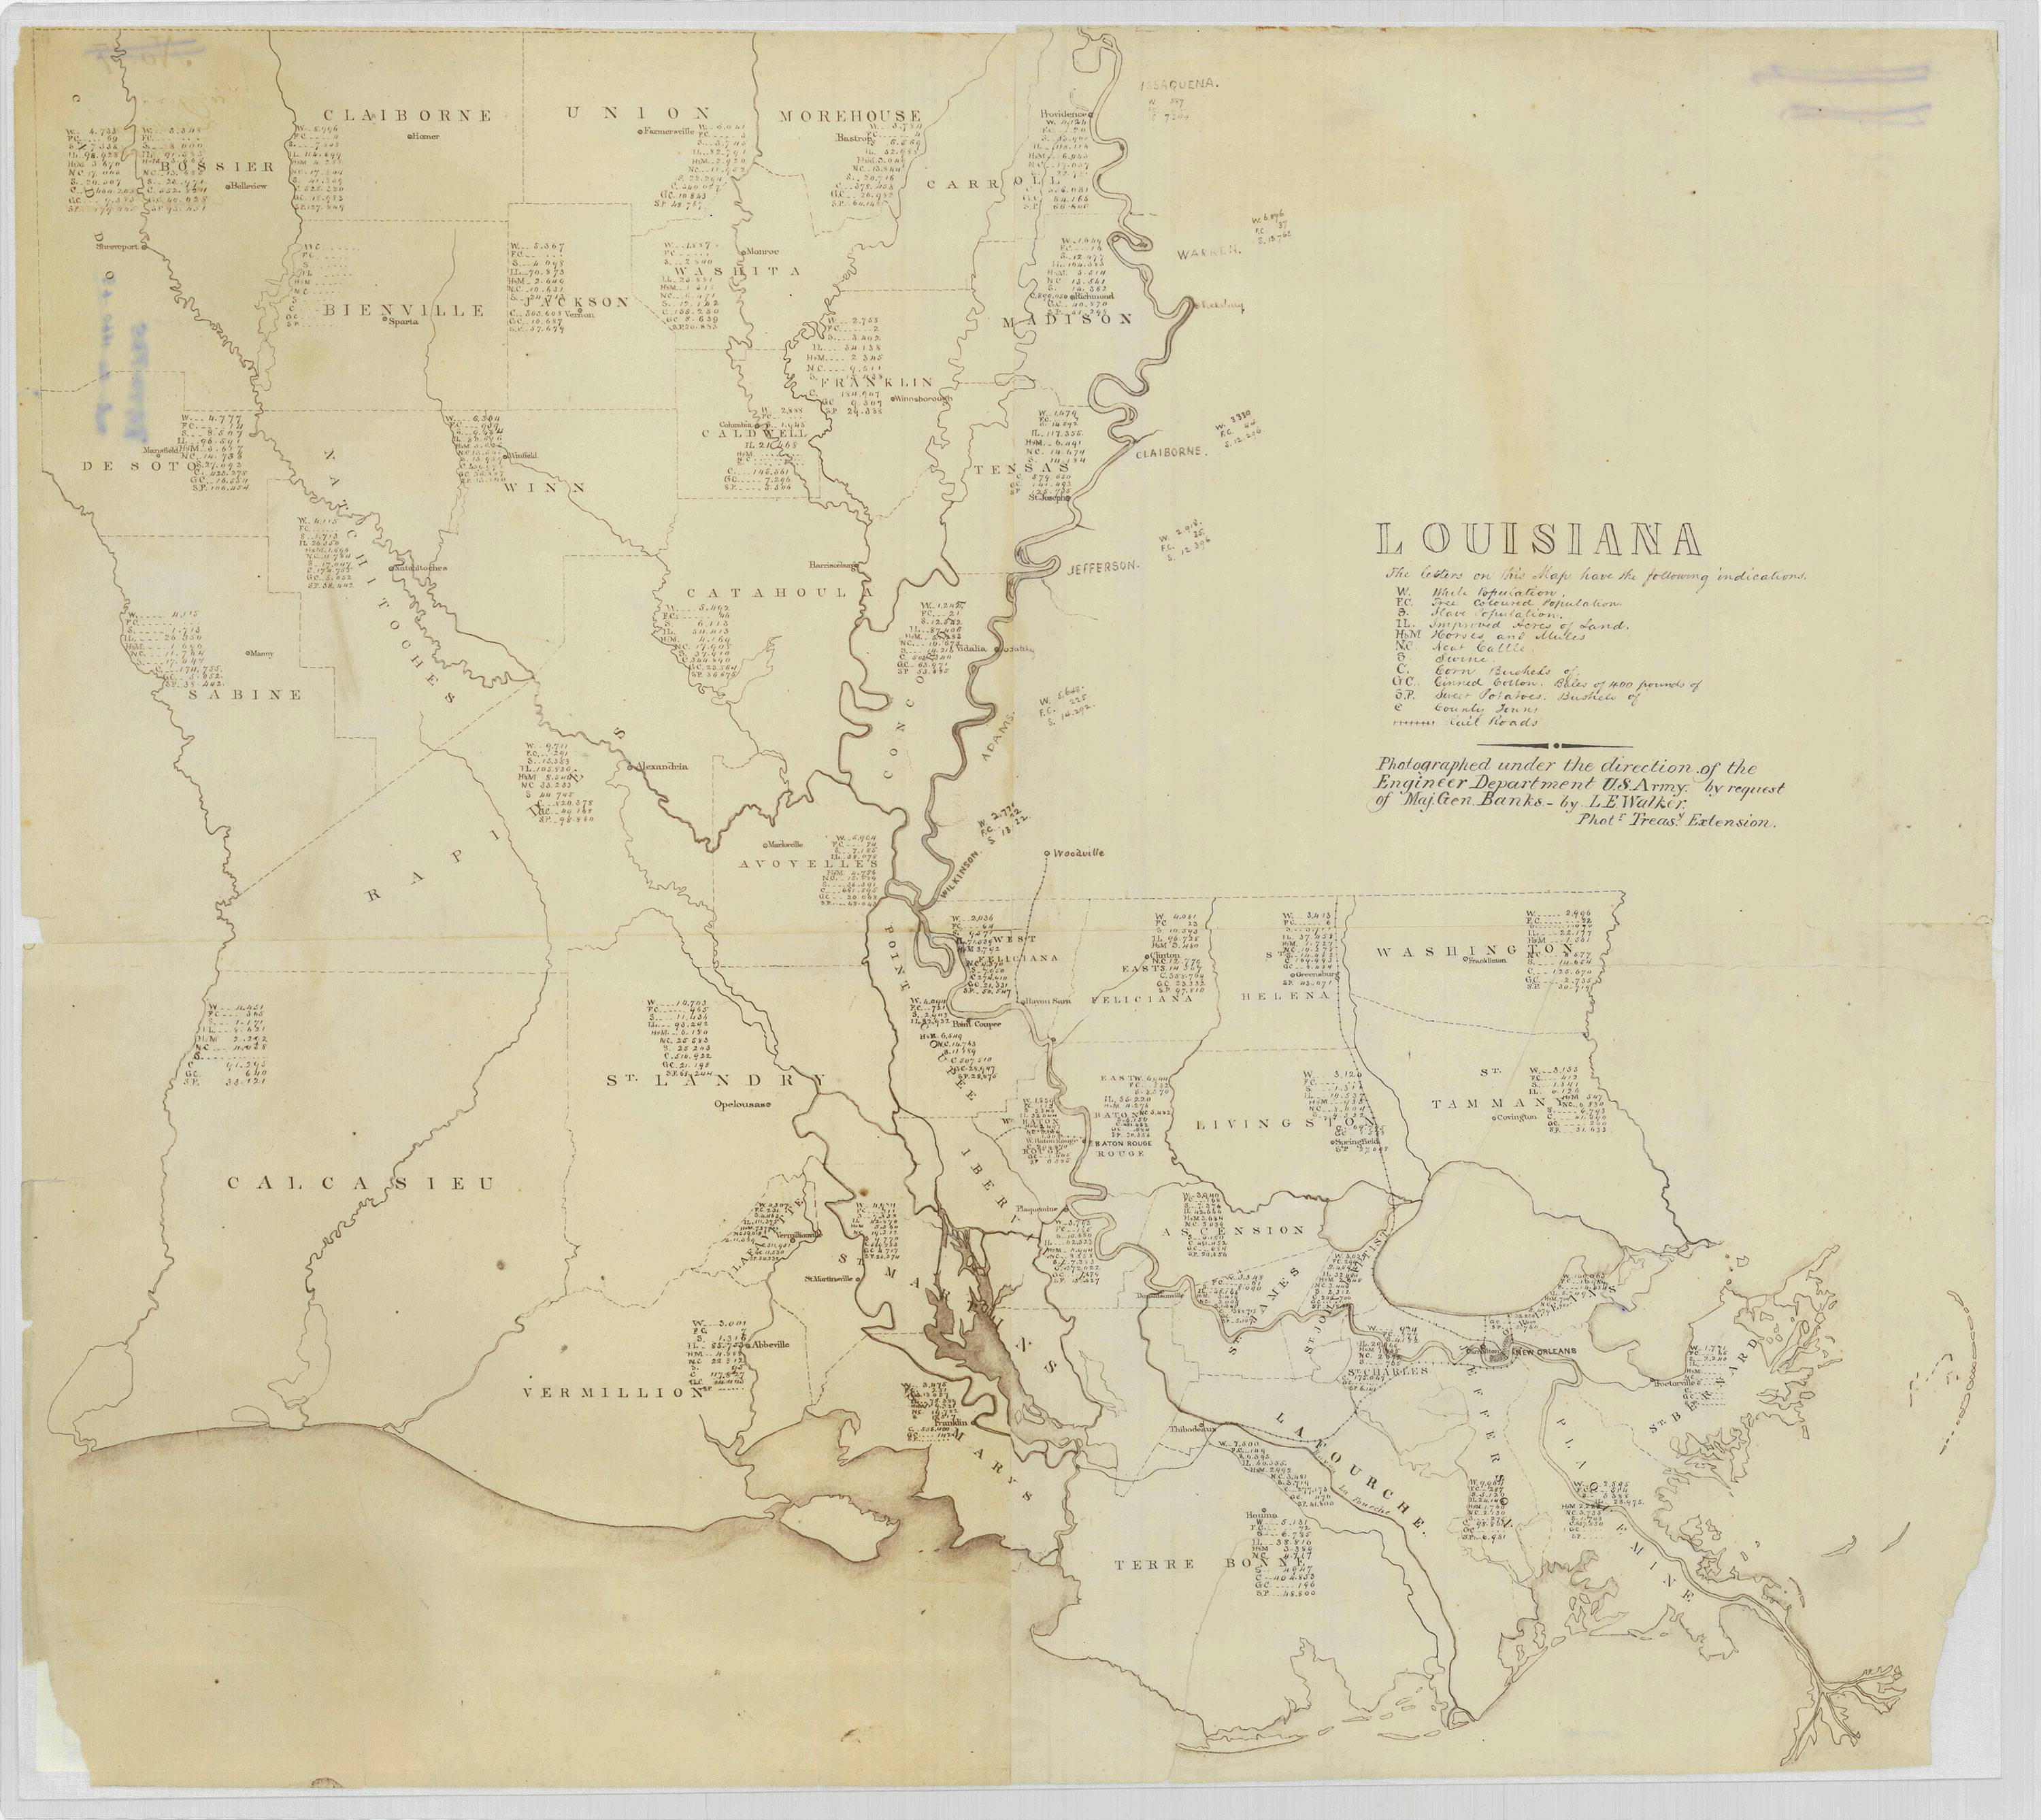 Civil War Louisiana, measured and mapped - Mapping the Nation Blog on